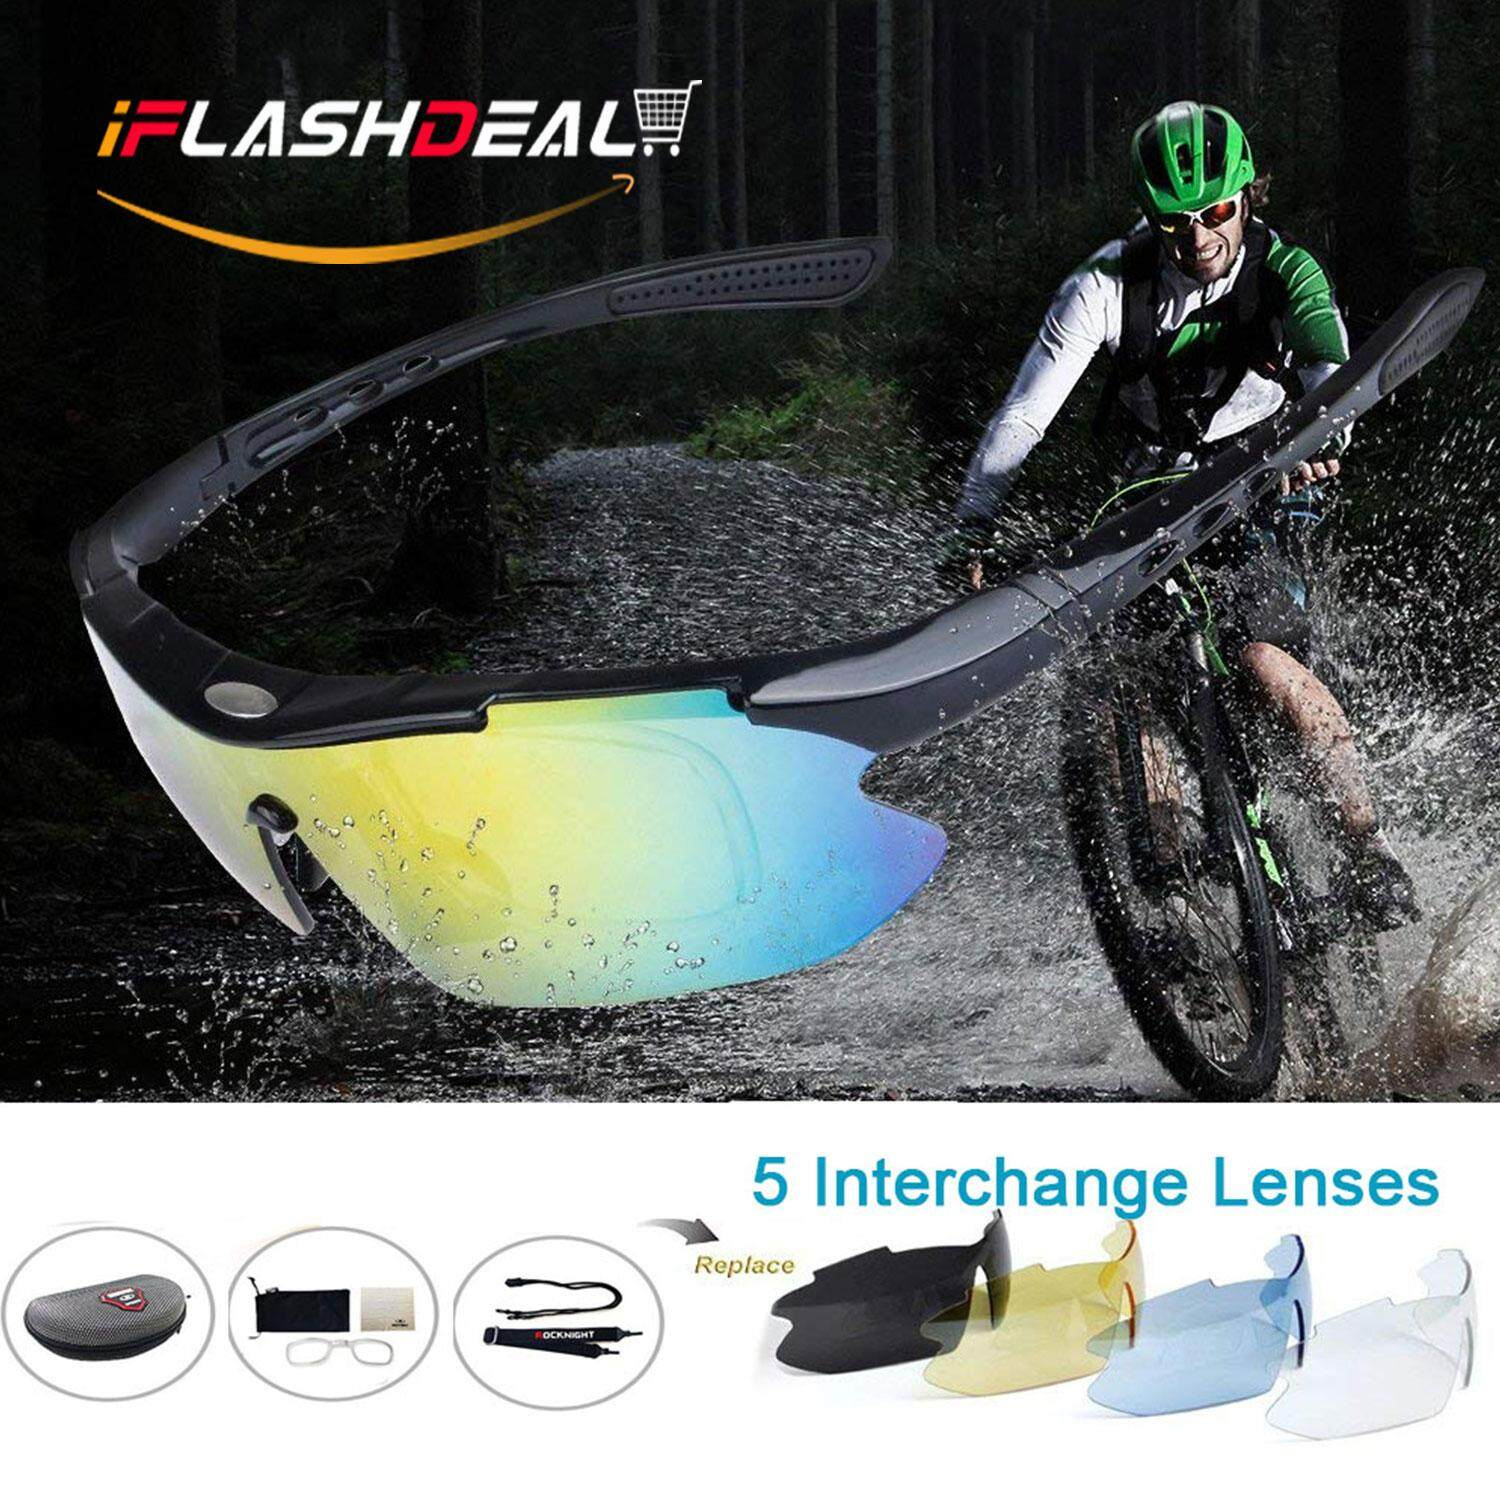 Iflashdeal Men Sports Sunglasses Polarized Outdoor Sport Driving Male Women Sun Glasses Cycling Riding Running Glasses With 5 Interchangeable Lenses By Iflashdeal.